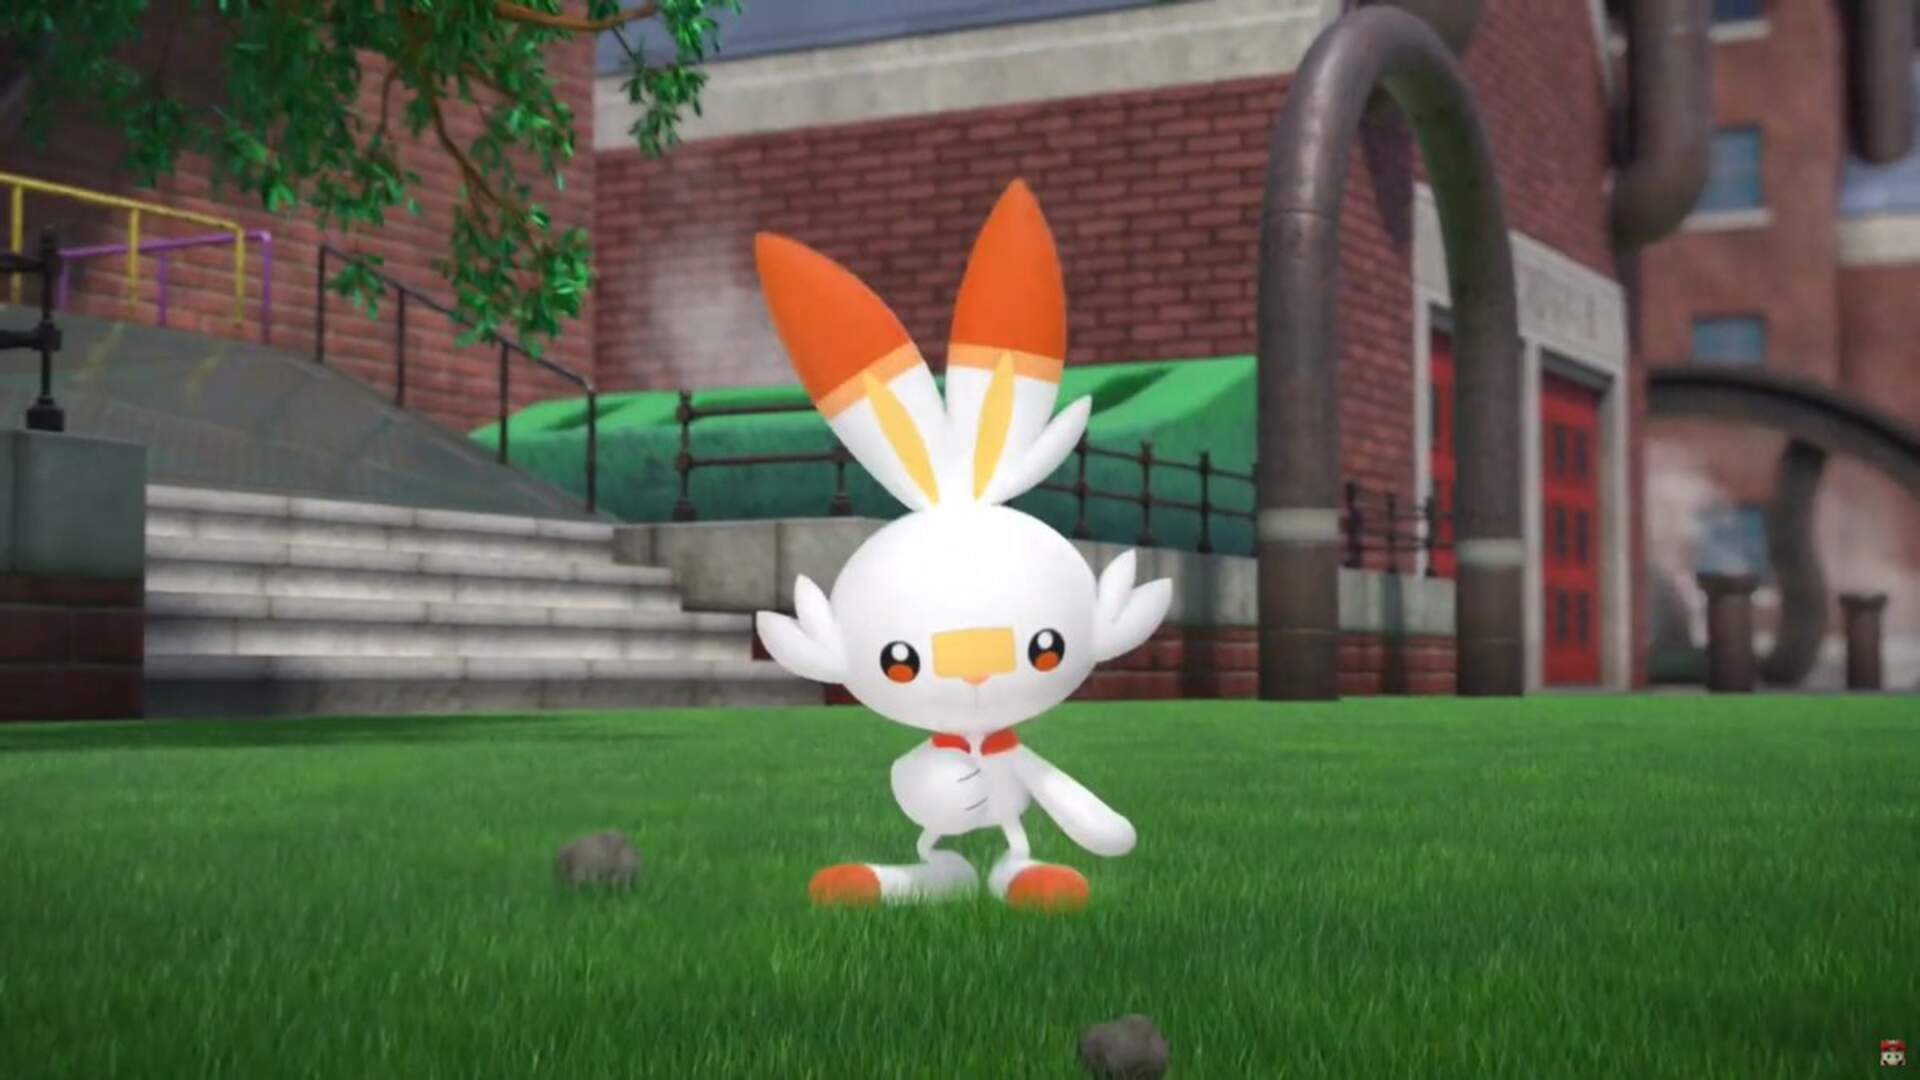 Scorbunny Opens Up Early Lead as Pokemon Sword and Shield's Most Popular Starter, But It Has Competition